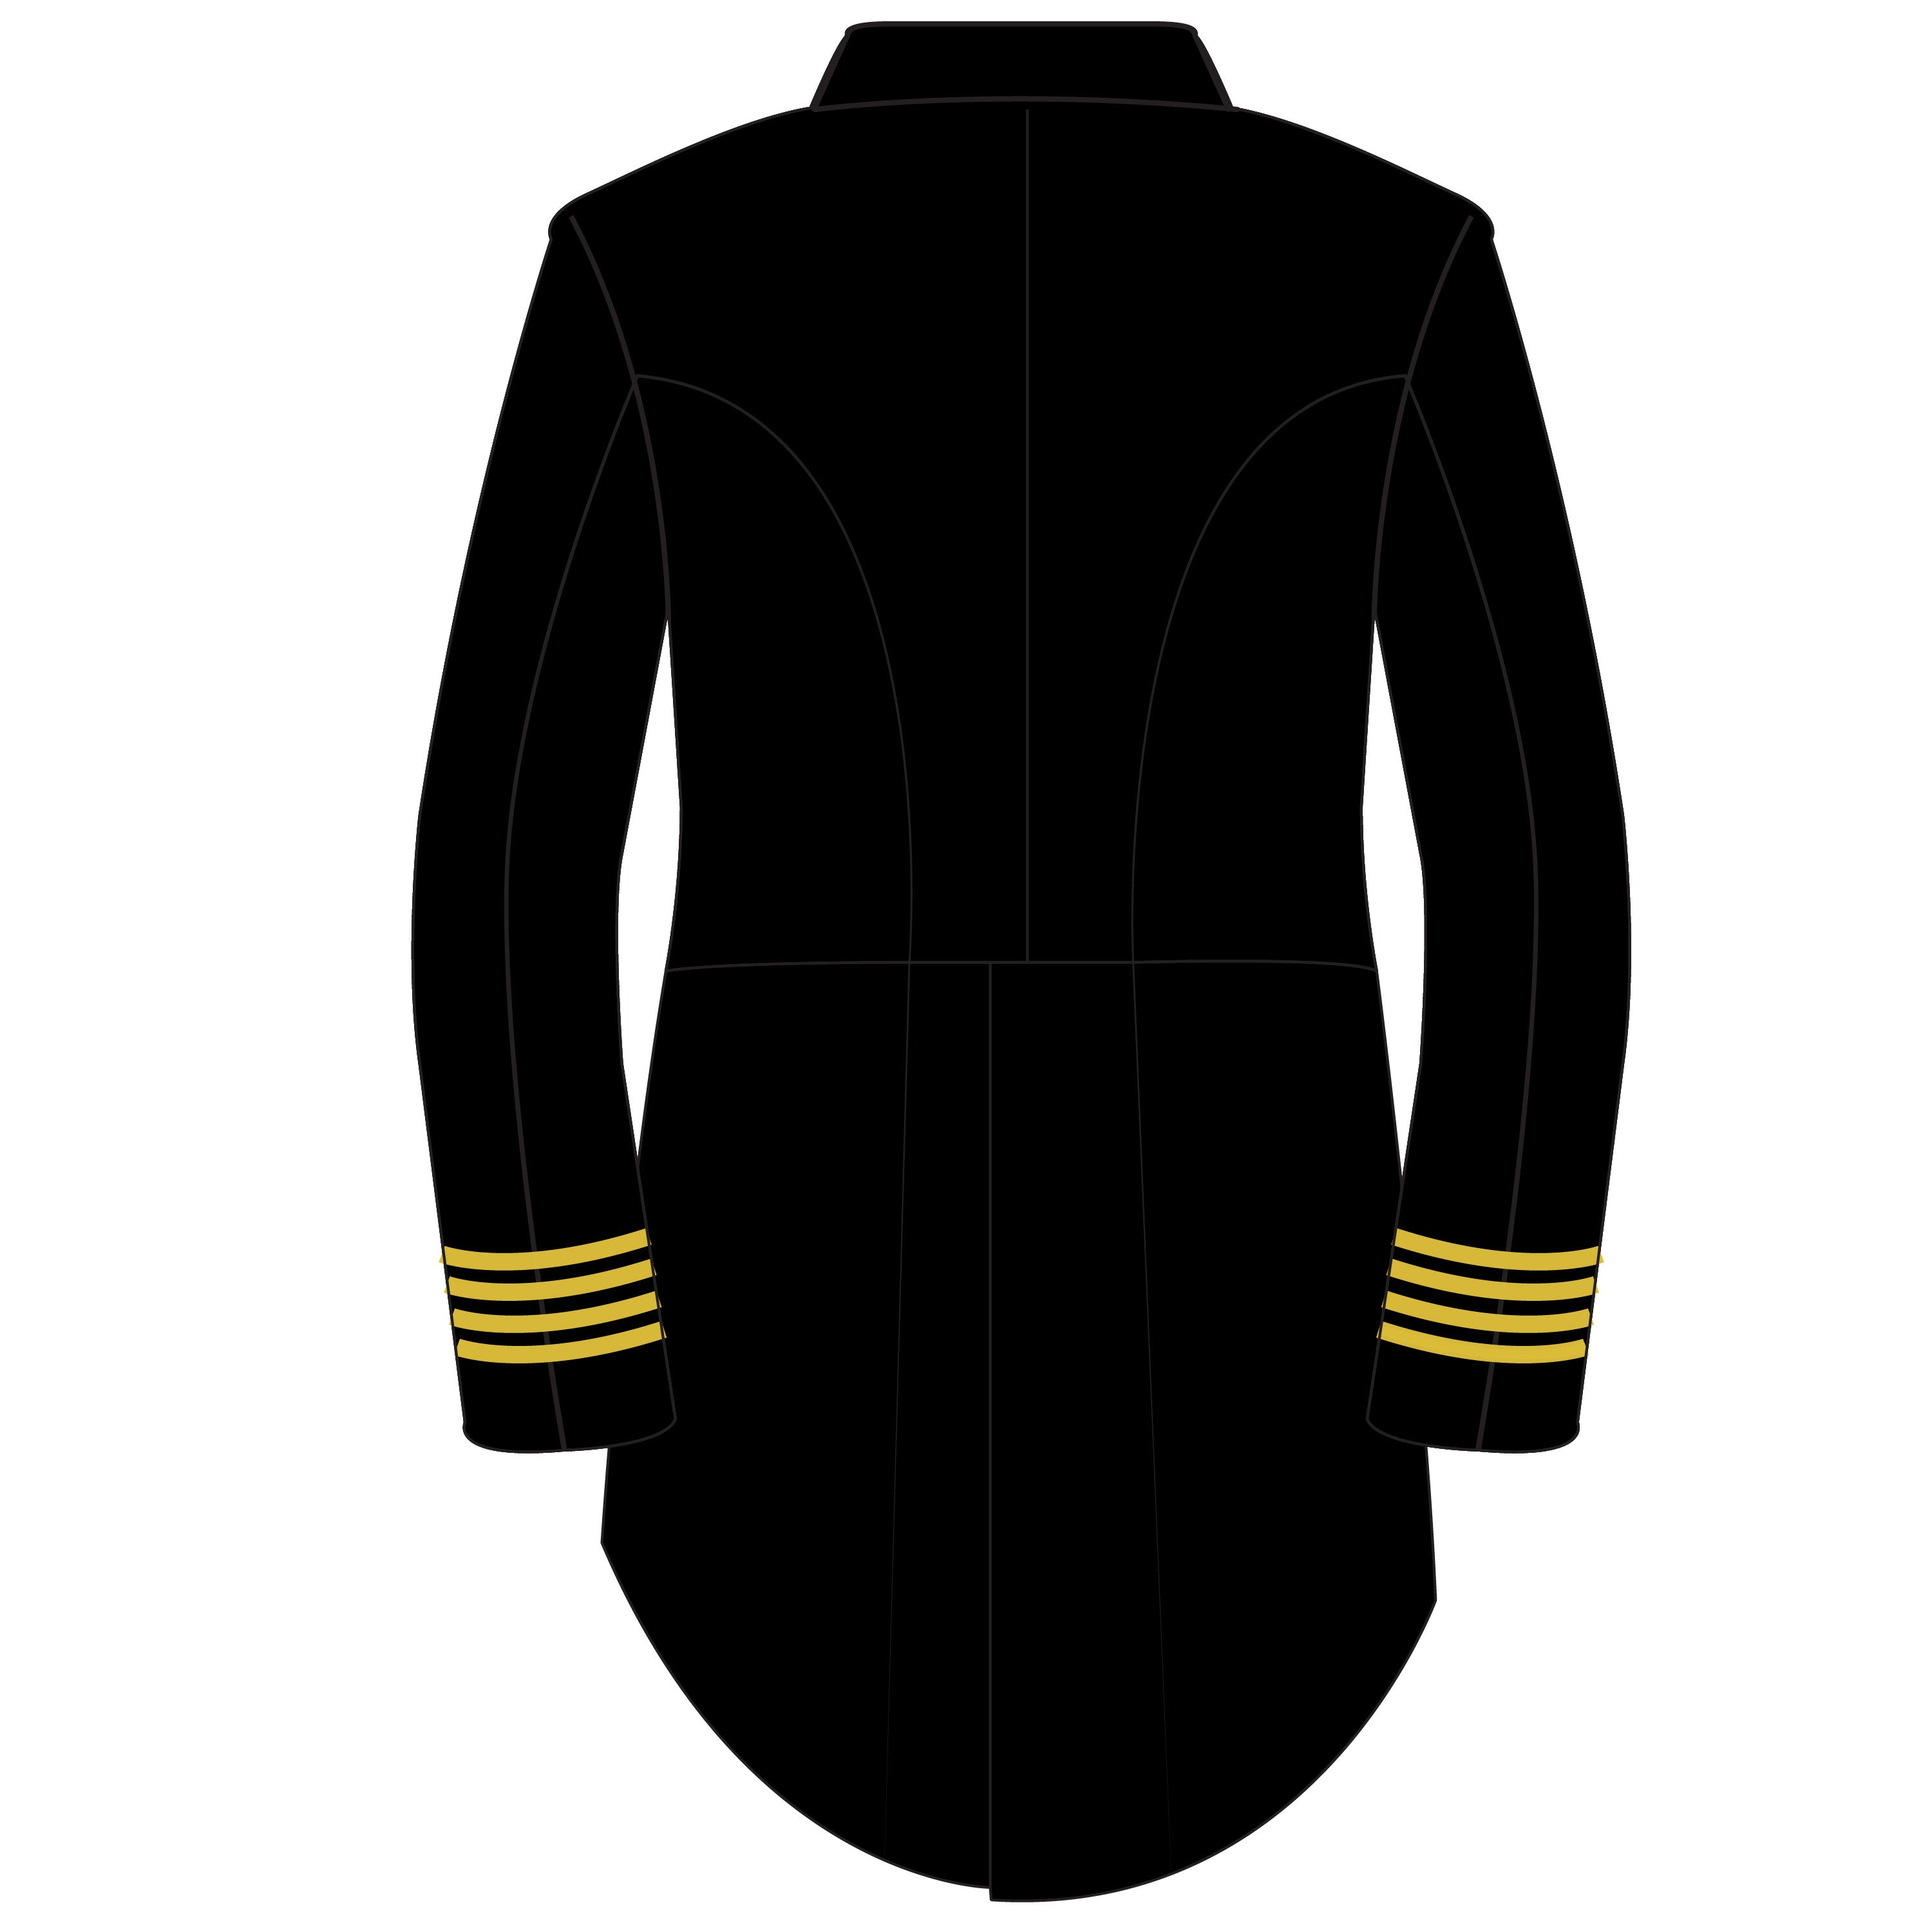 NO. 2 MESS STANDARD:  NAVY - TAILCOAT - MALE